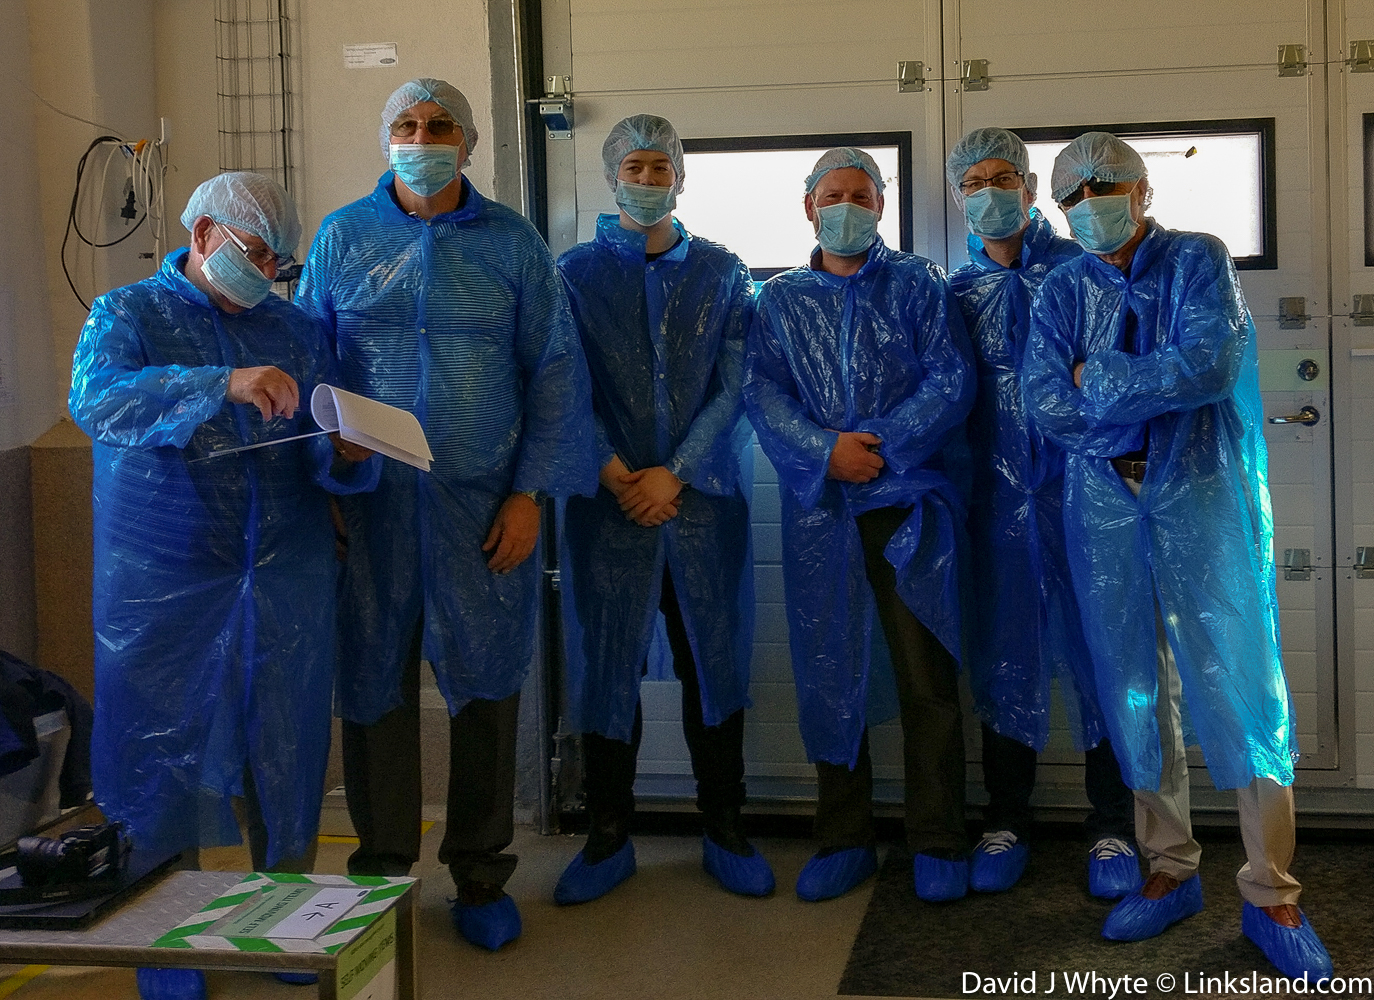 Our gang, suitably suited and booted took a tour of the Genis factory. I'm the one on the right - in case you're wondering.